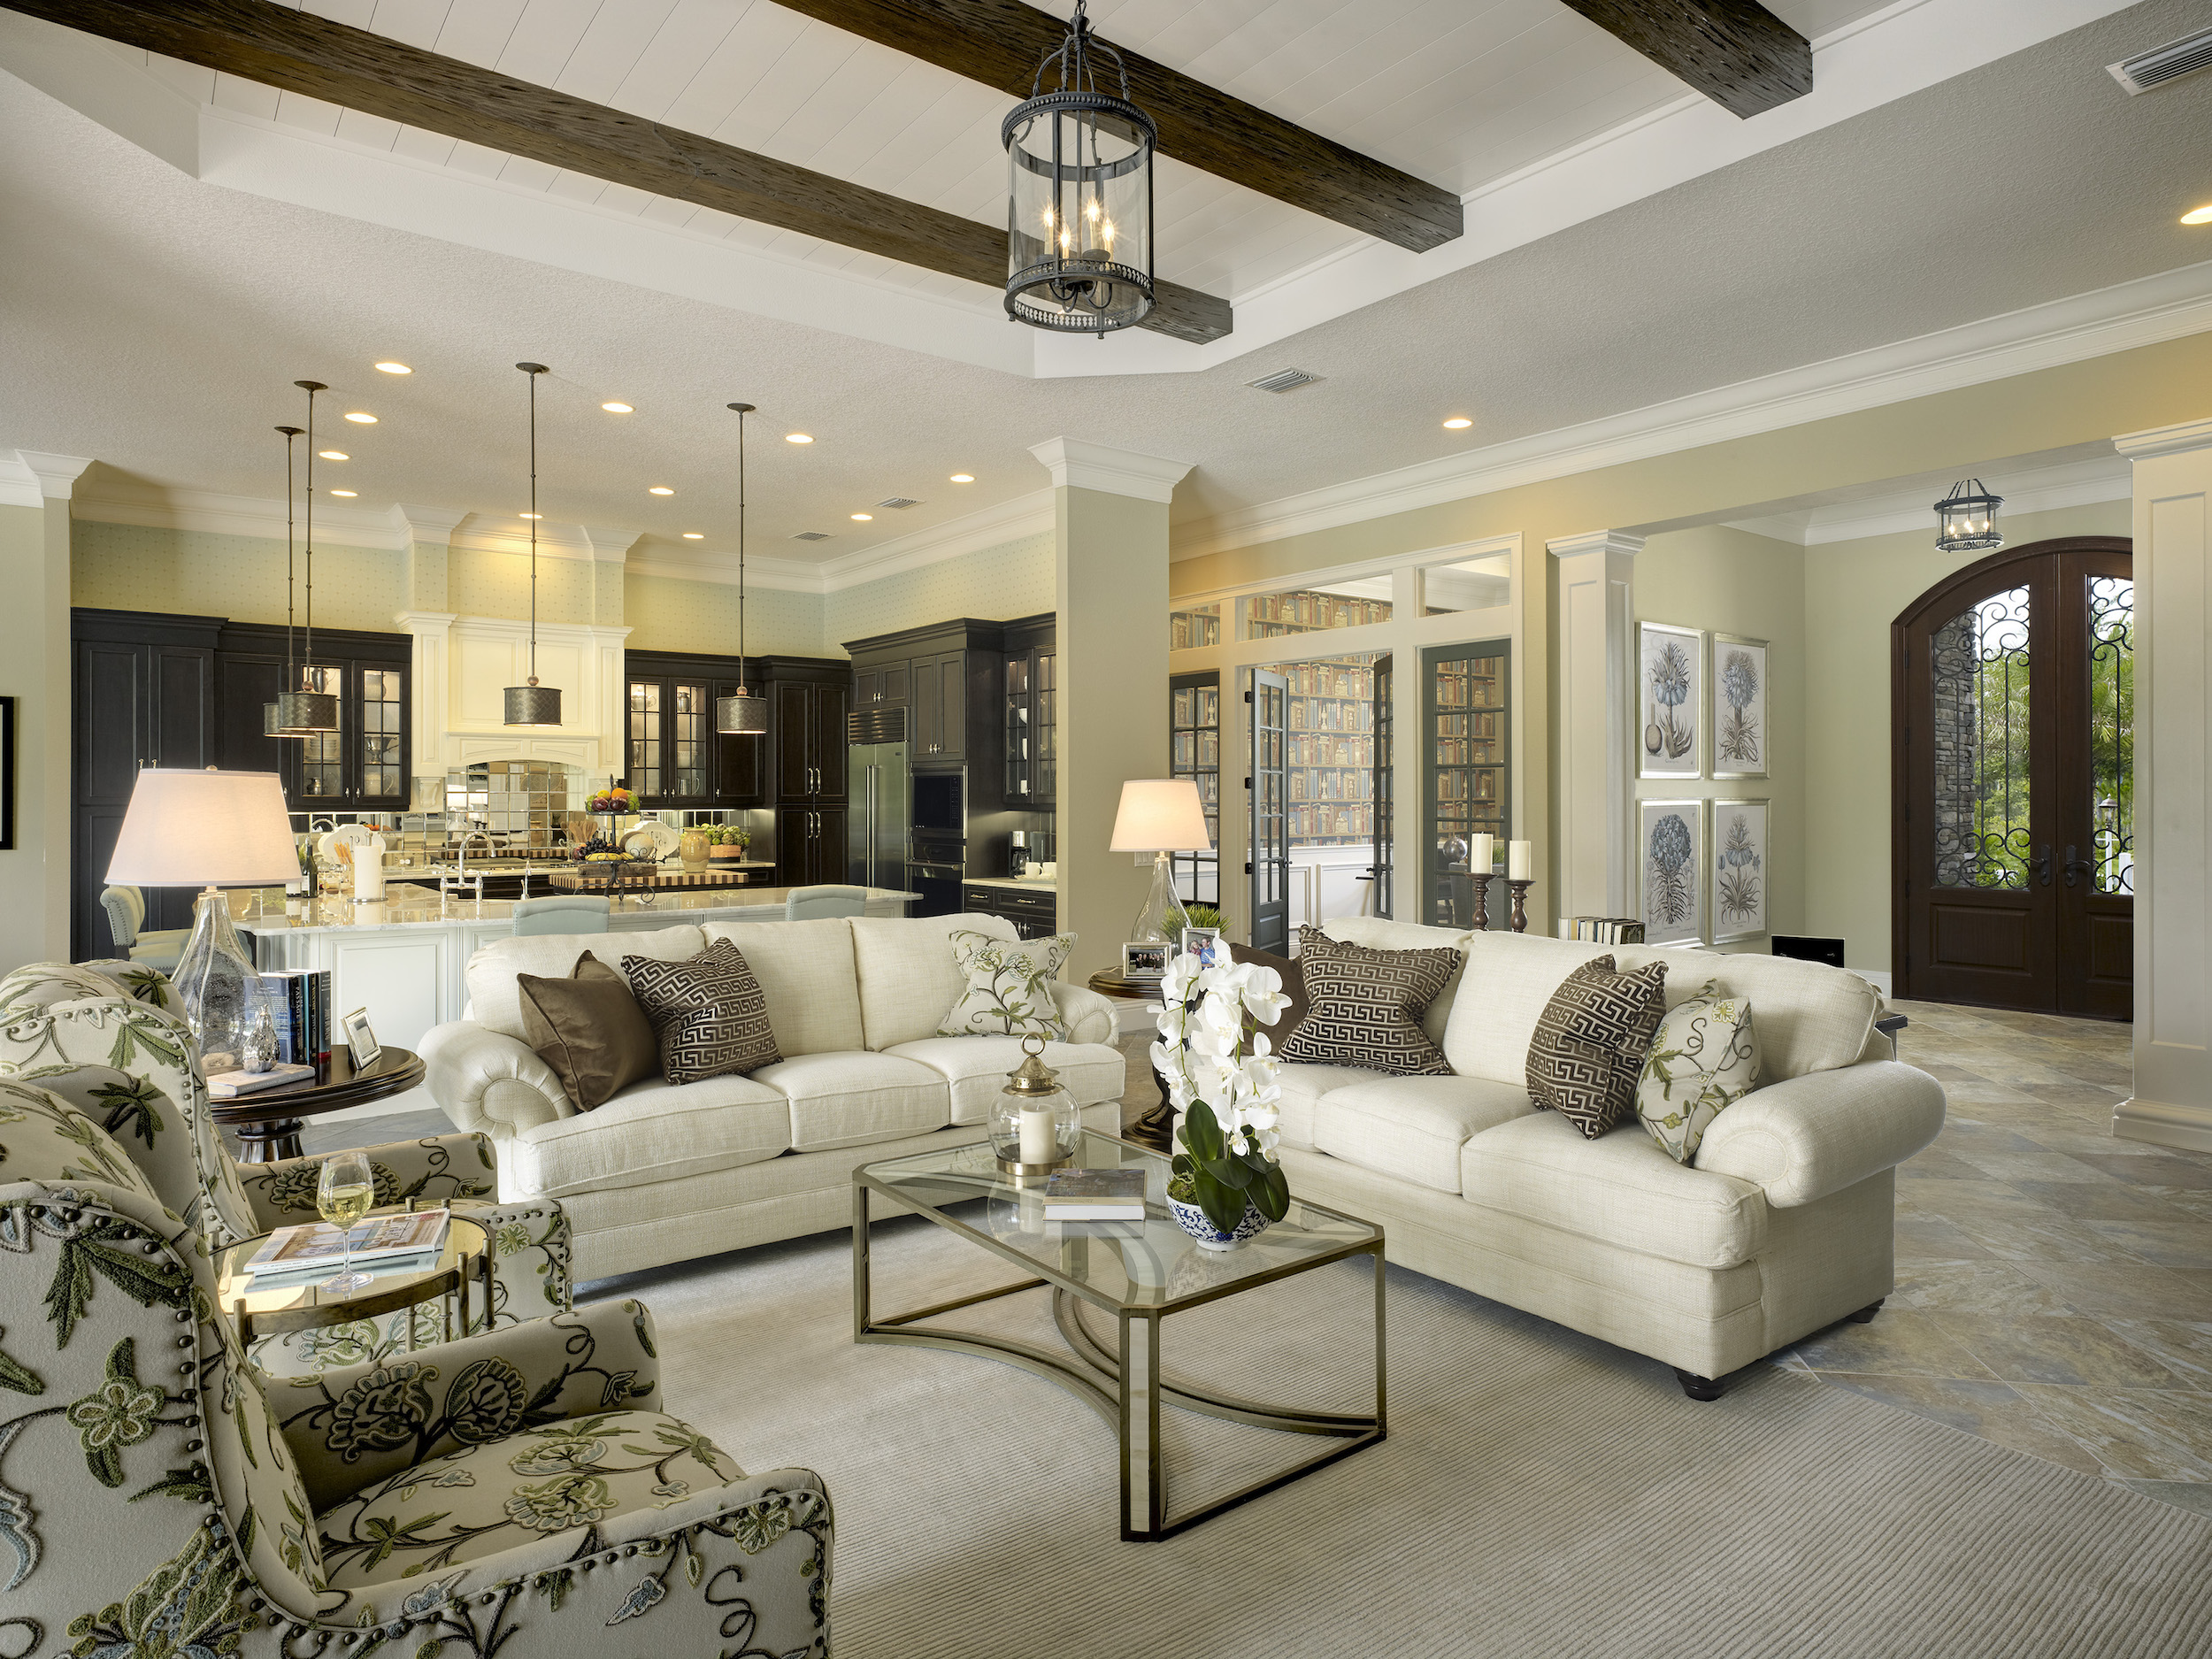 Image Gallery Joy Mangano Home